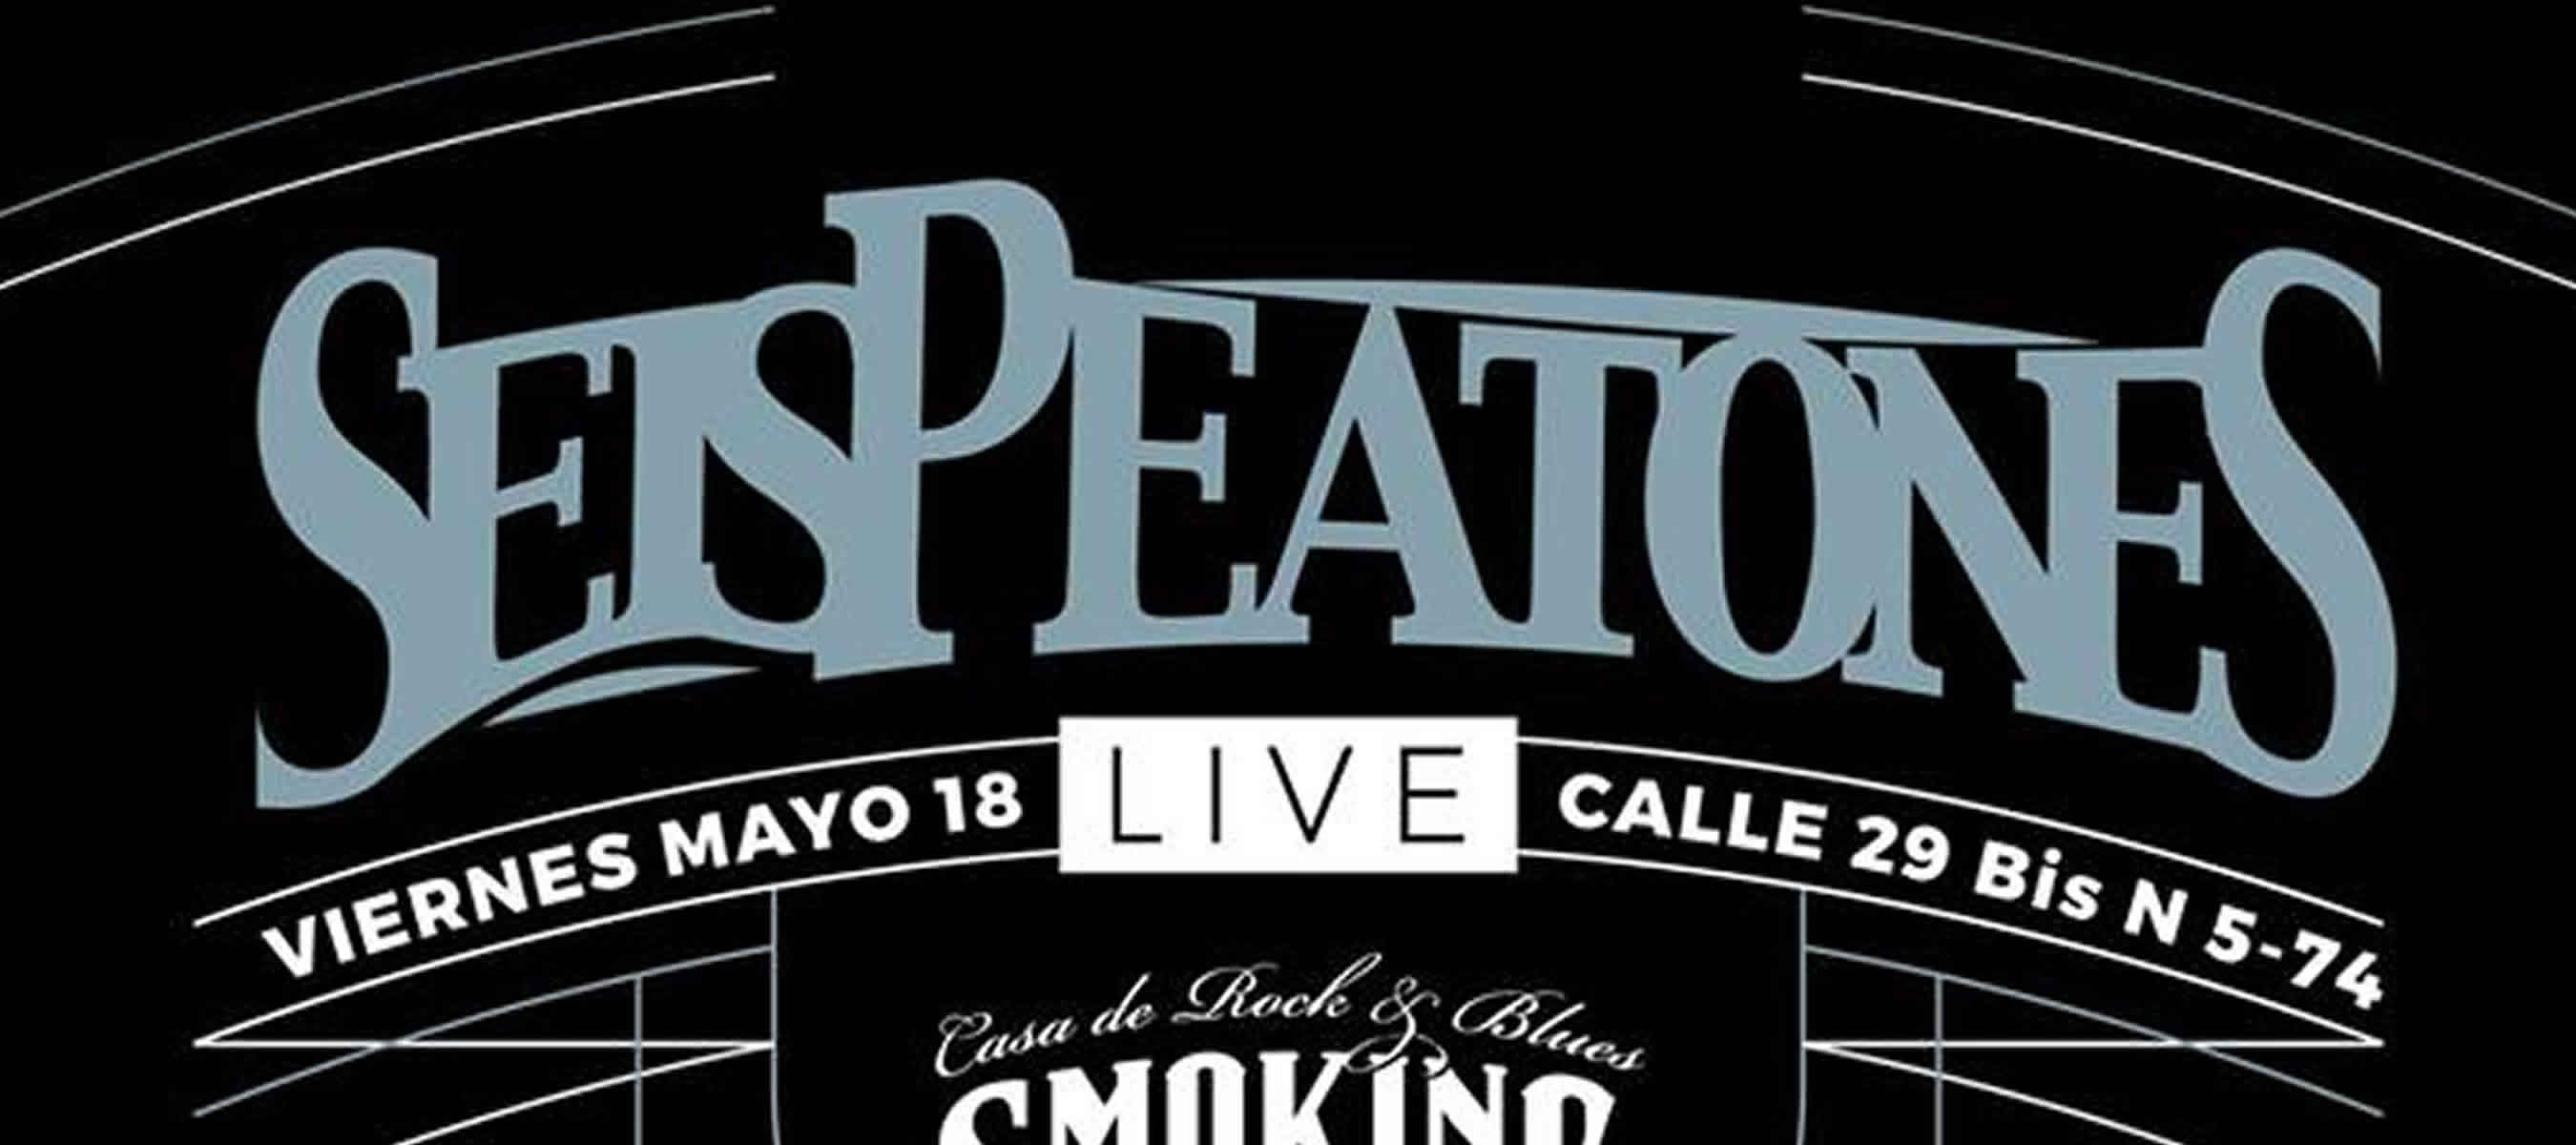 Seis peatones - Smoking Molly